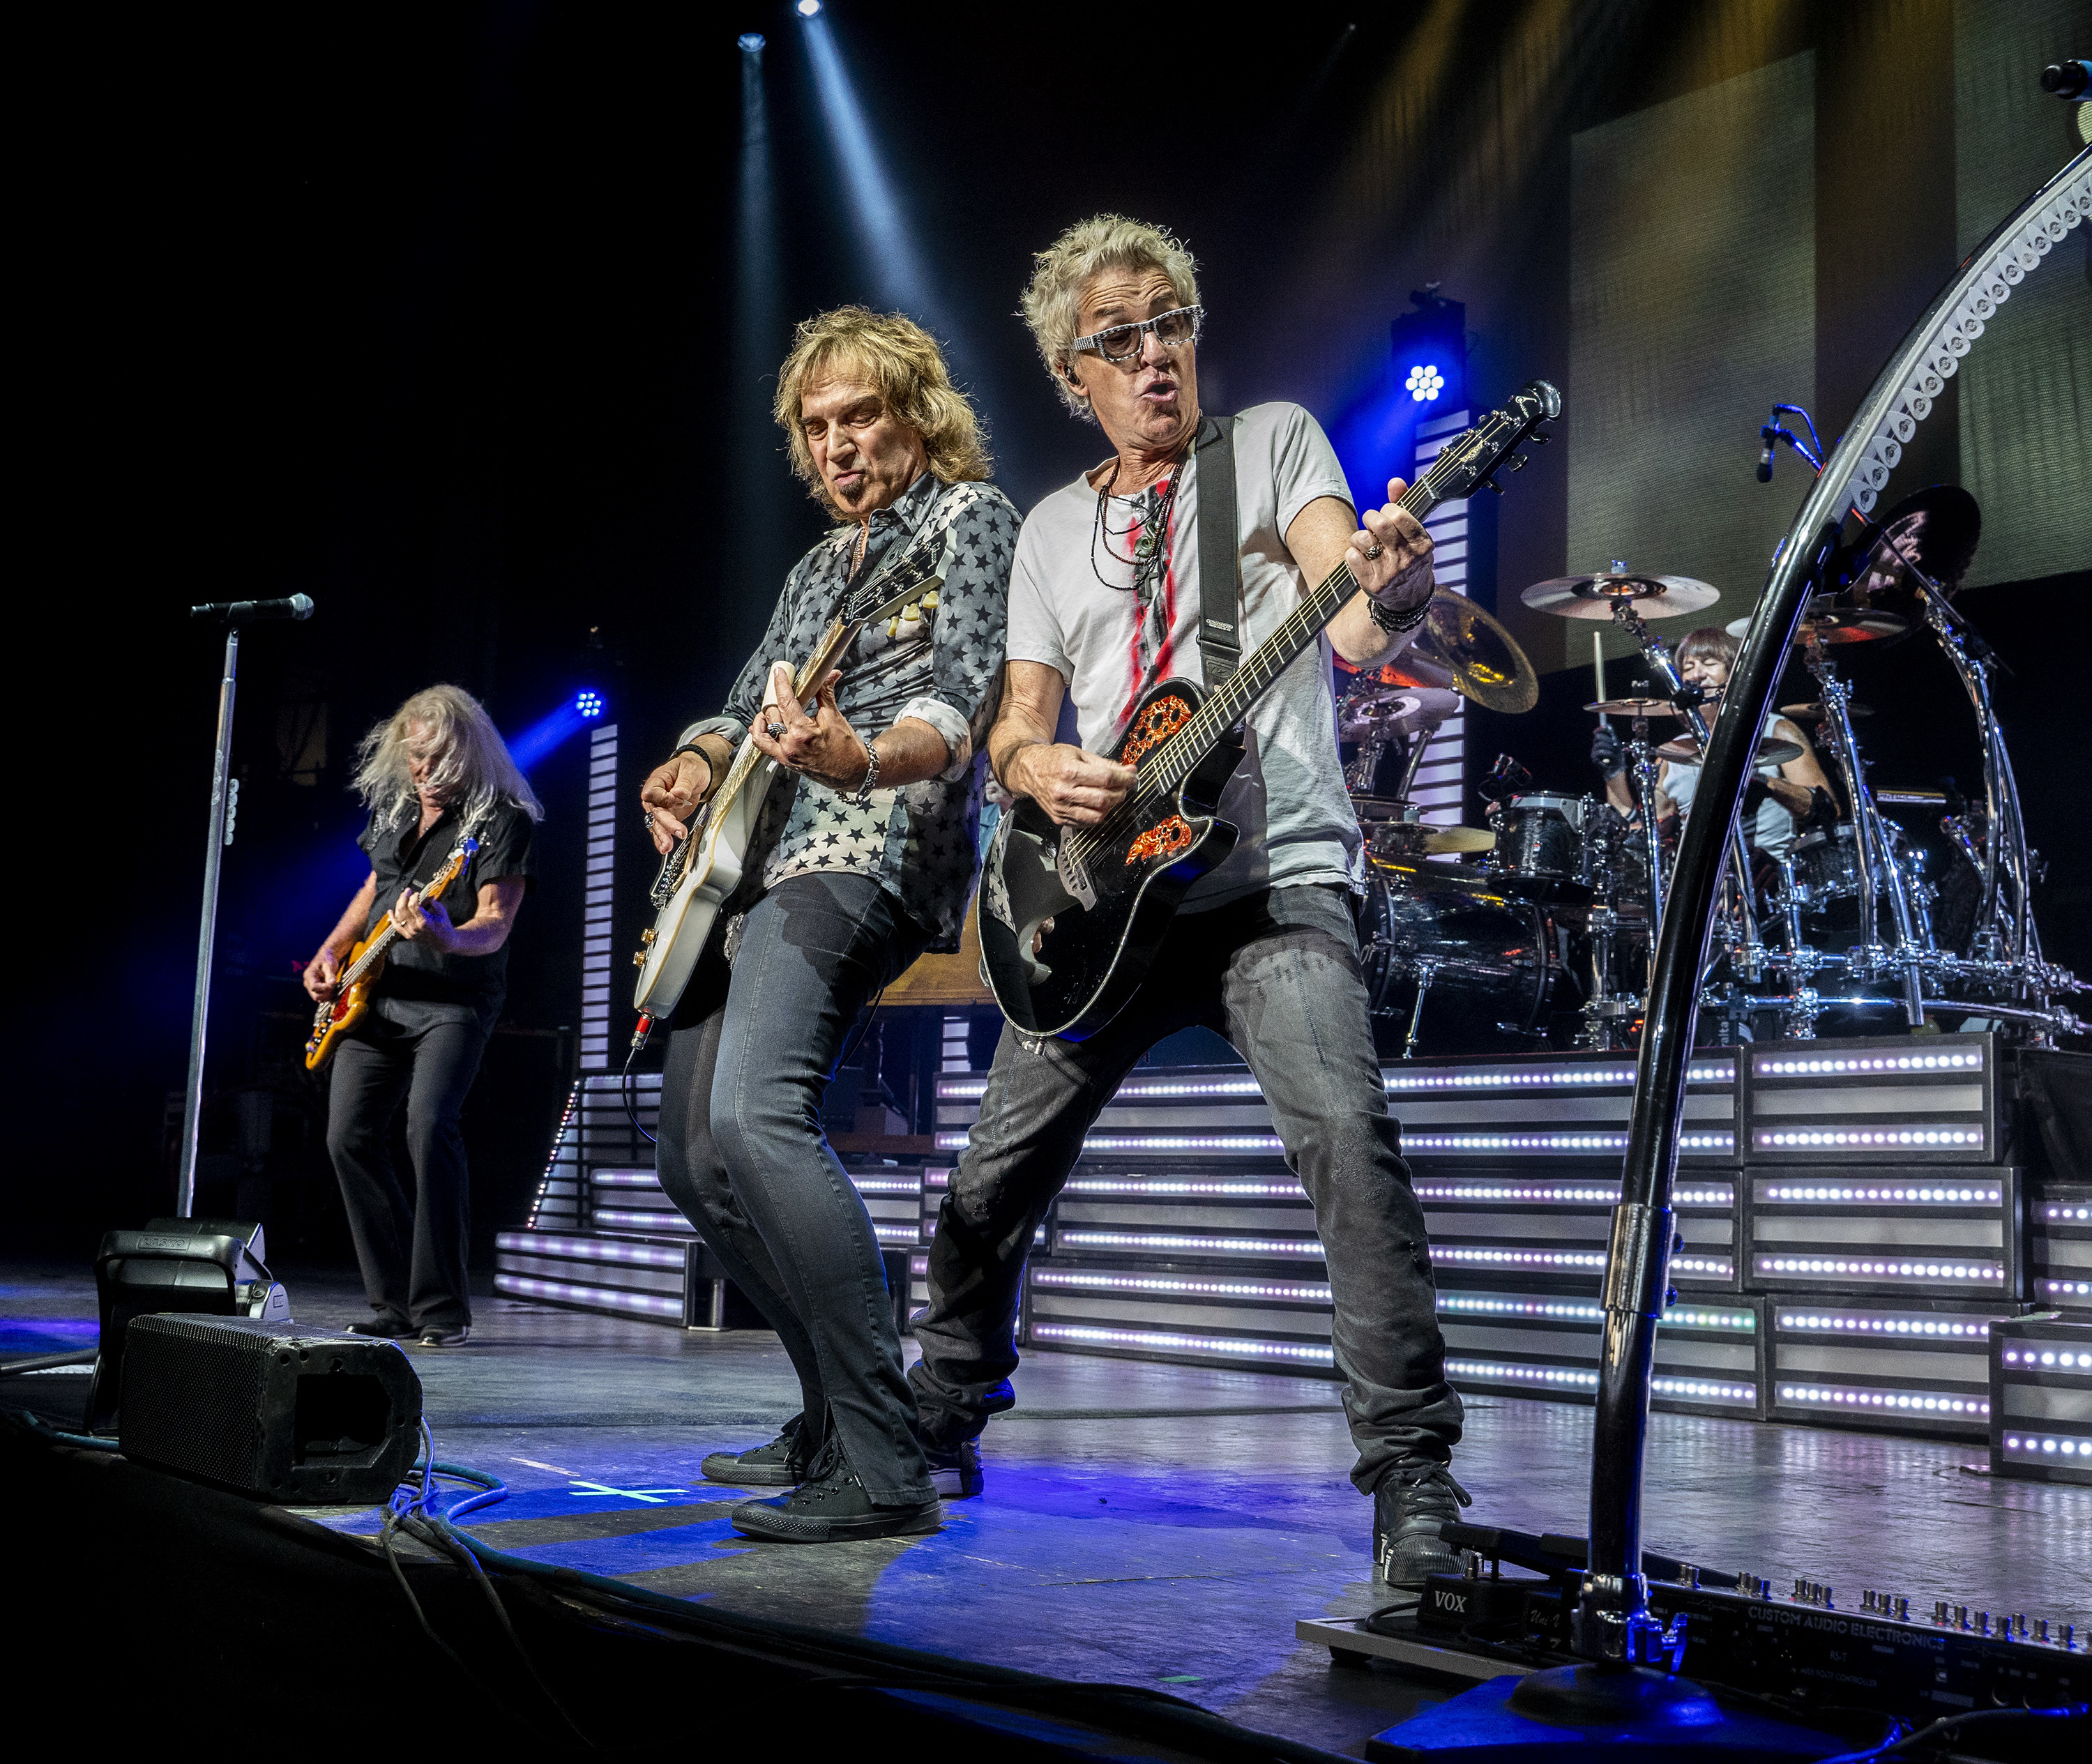 New York State Fair Concerts 2020.Reo Speedwagon Styx To Perform At The York State Fair